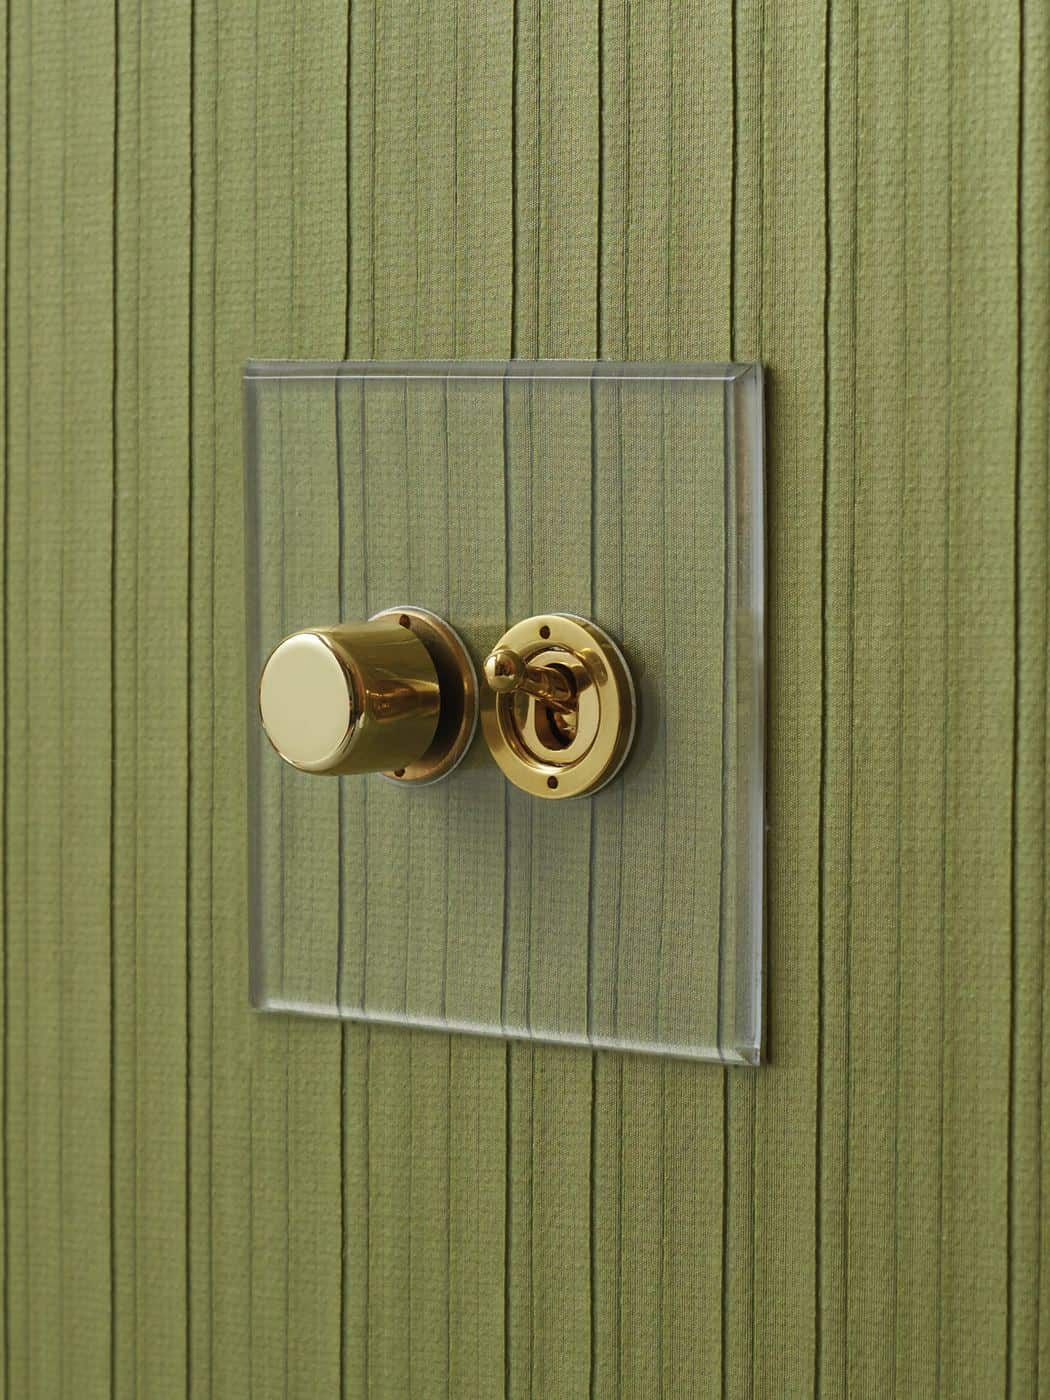 Designer electrical wiring accessories from Focus SB - Prism transparent faceplate for light switch